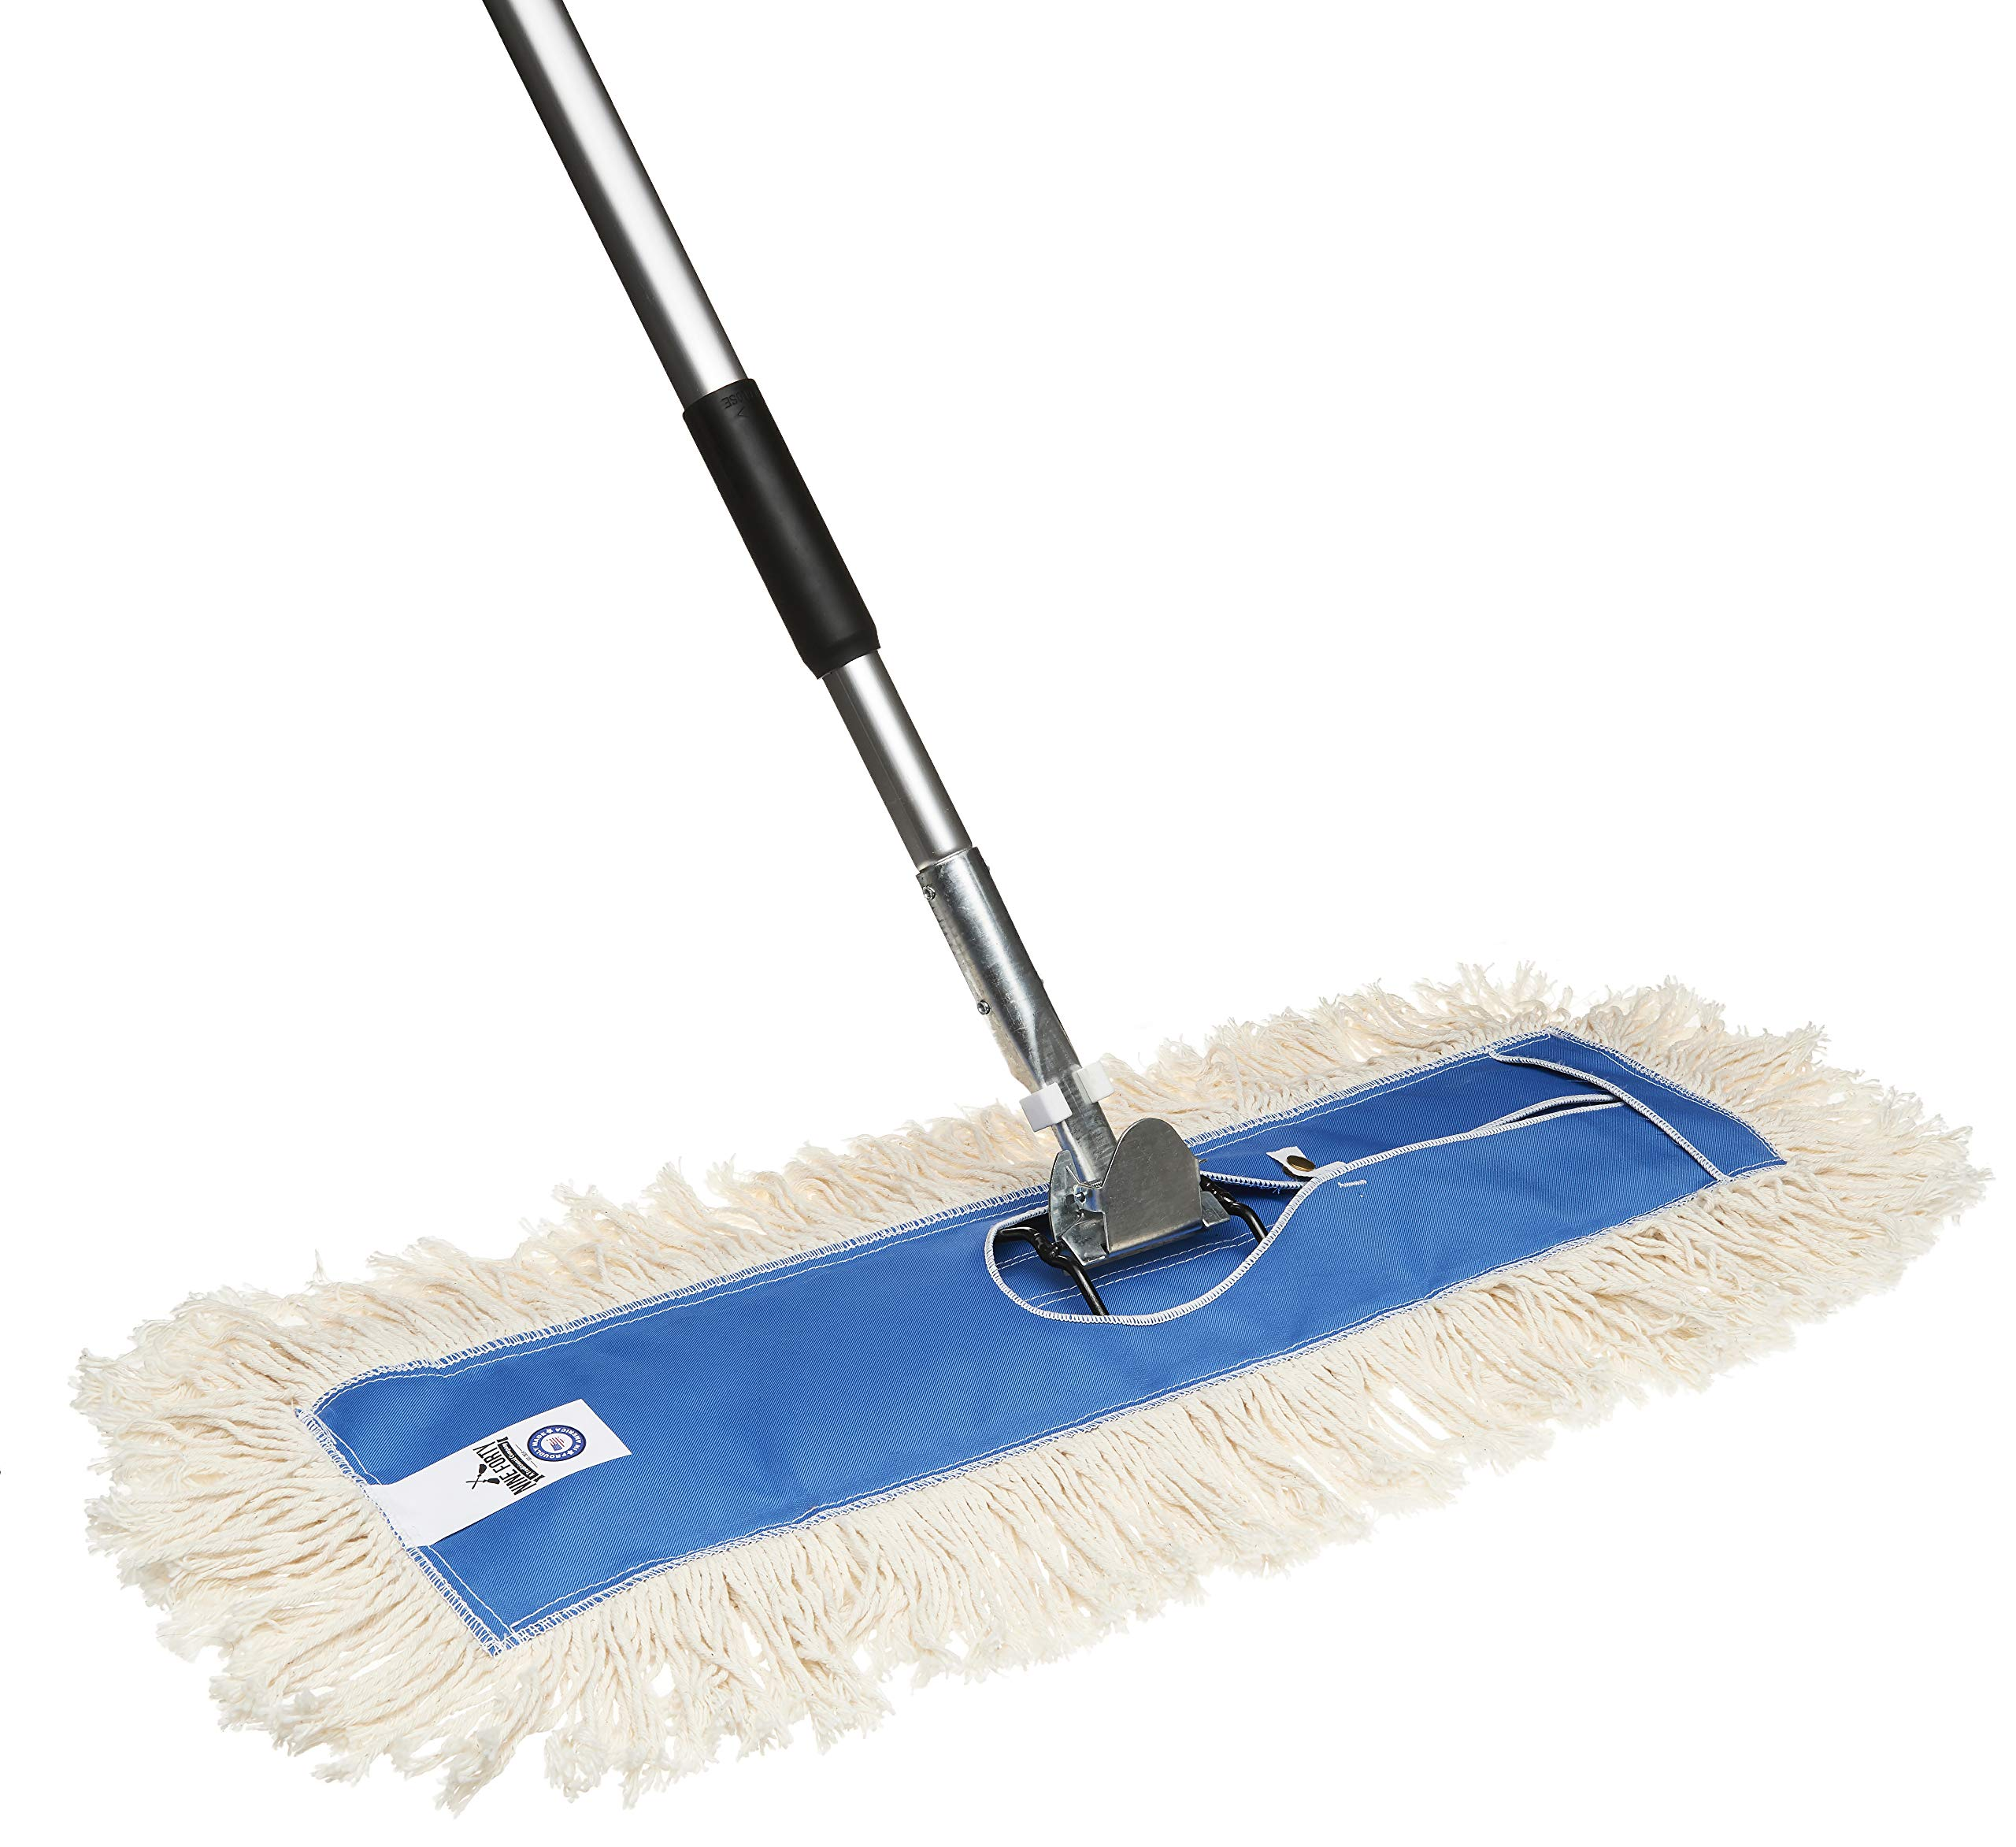 Nine Forty Residential | Commercial 24 Inch USA Cotton Hardwood Floor Dry Dust Mop Head | Handle